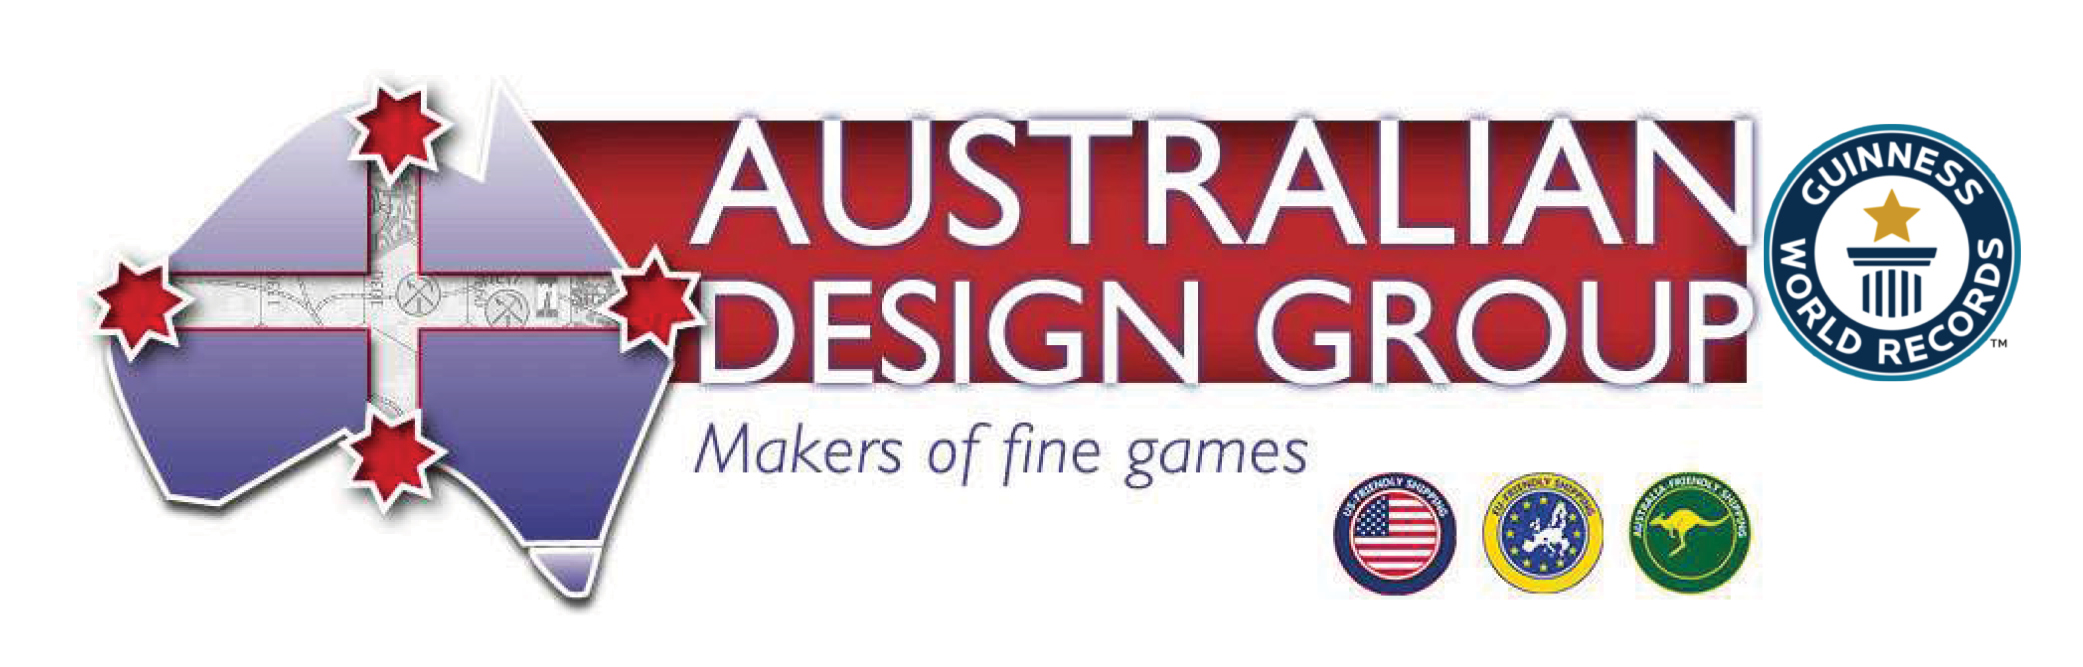 Australian Design Group -suoratilaushinnasto